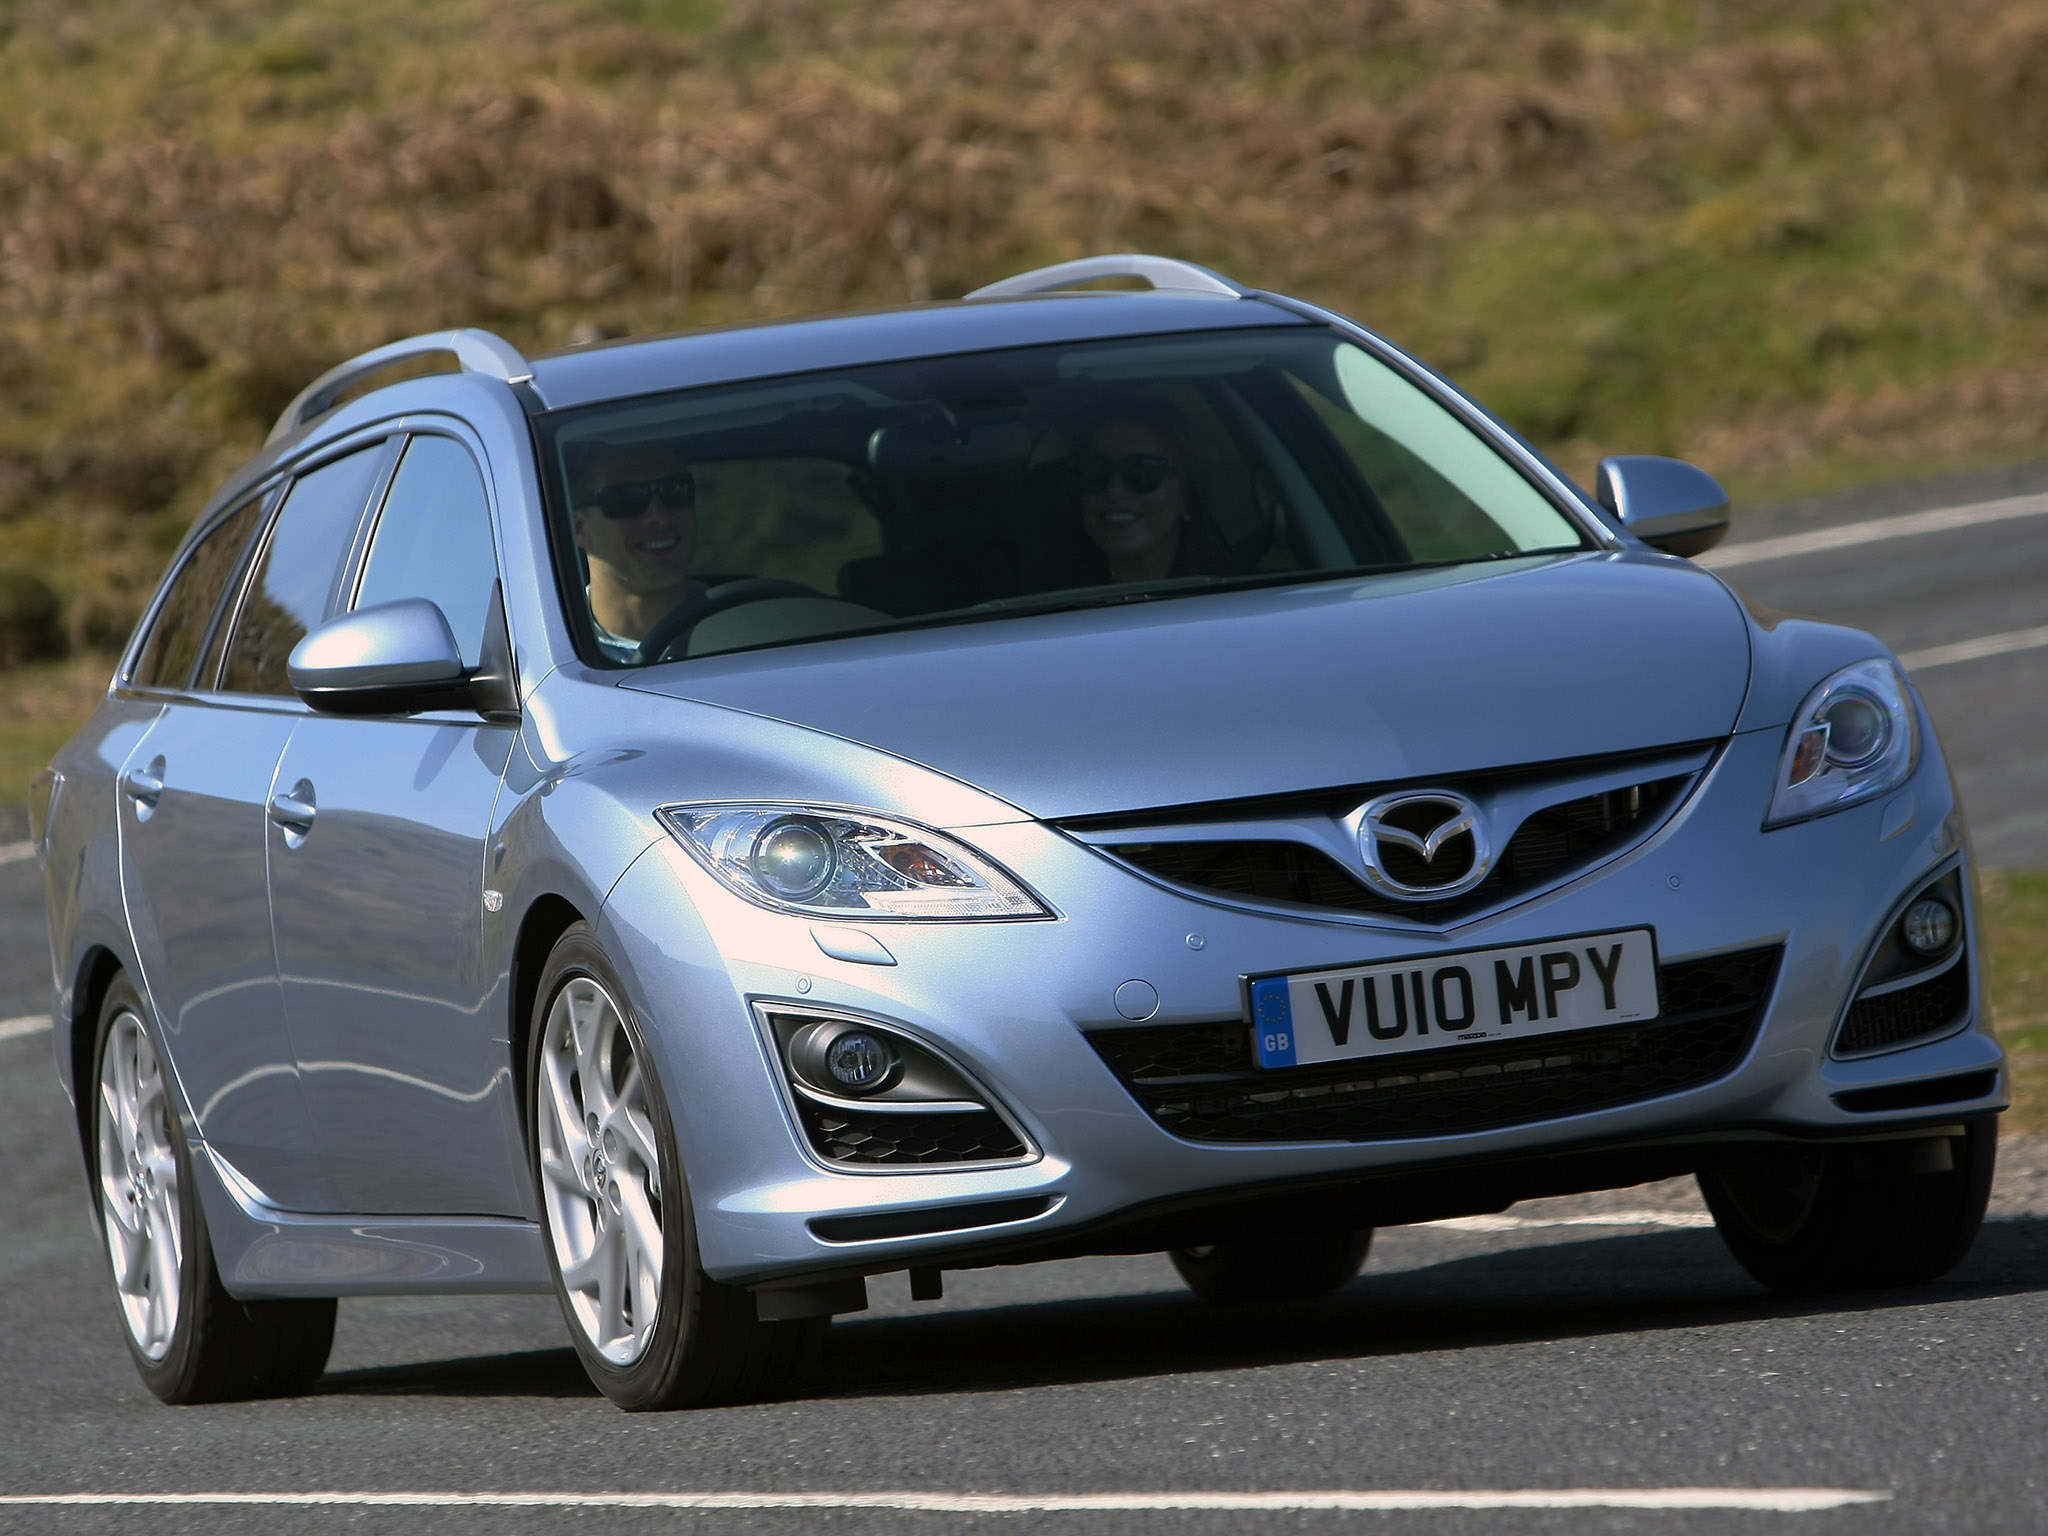 2010 Mazda Mazda 6 wagon – pictures, information and specs ...